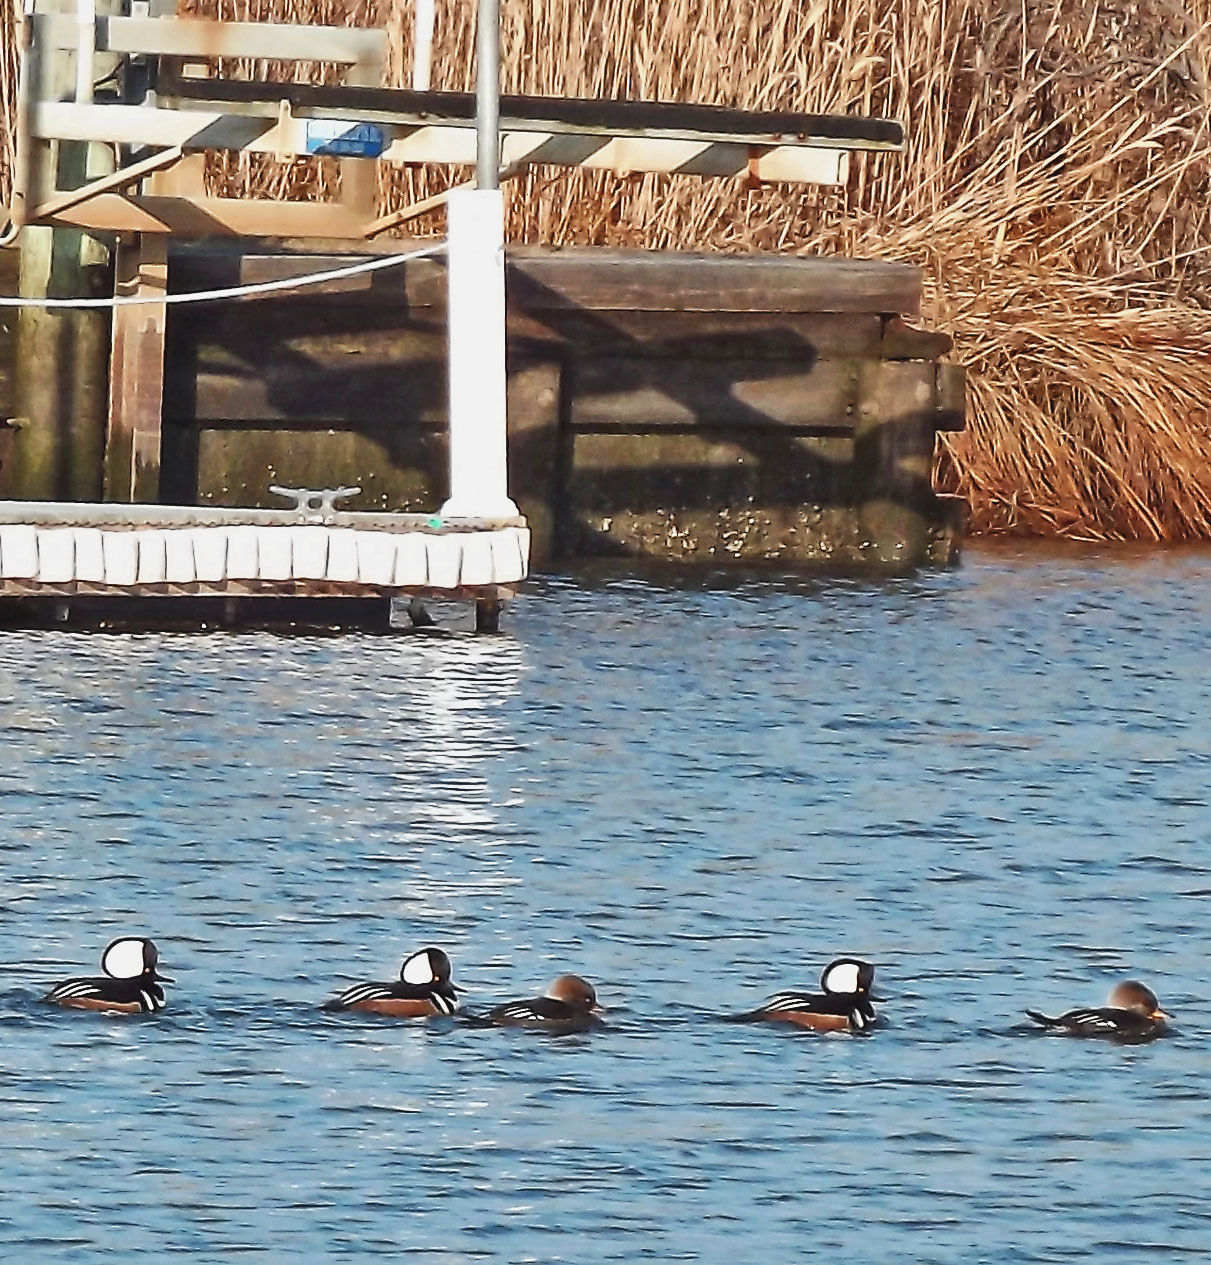 Merganser Coastal Ducks